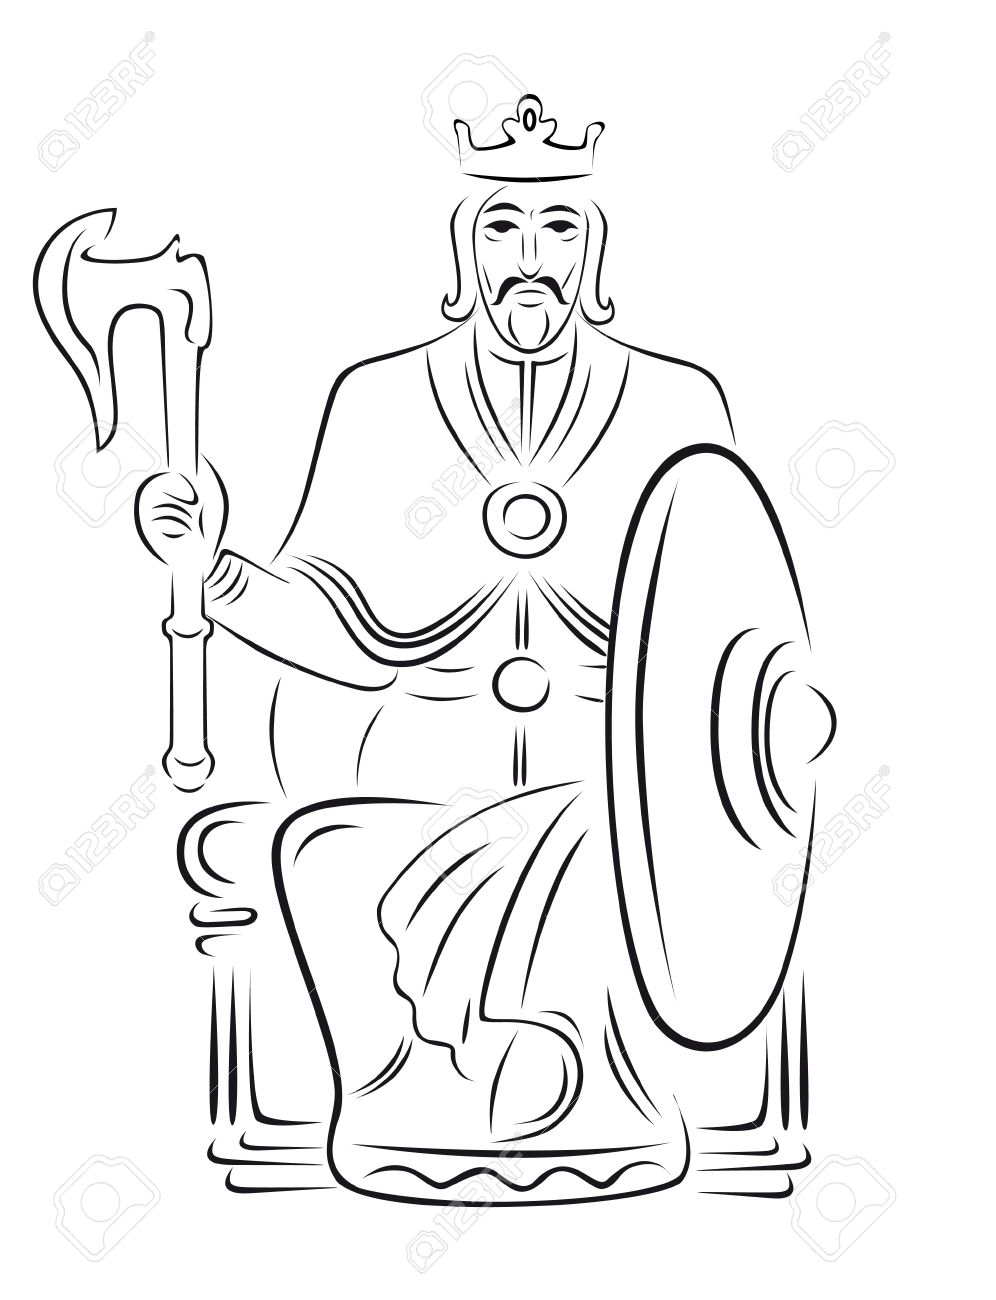 996x1300 Throne Clipart Medieval King